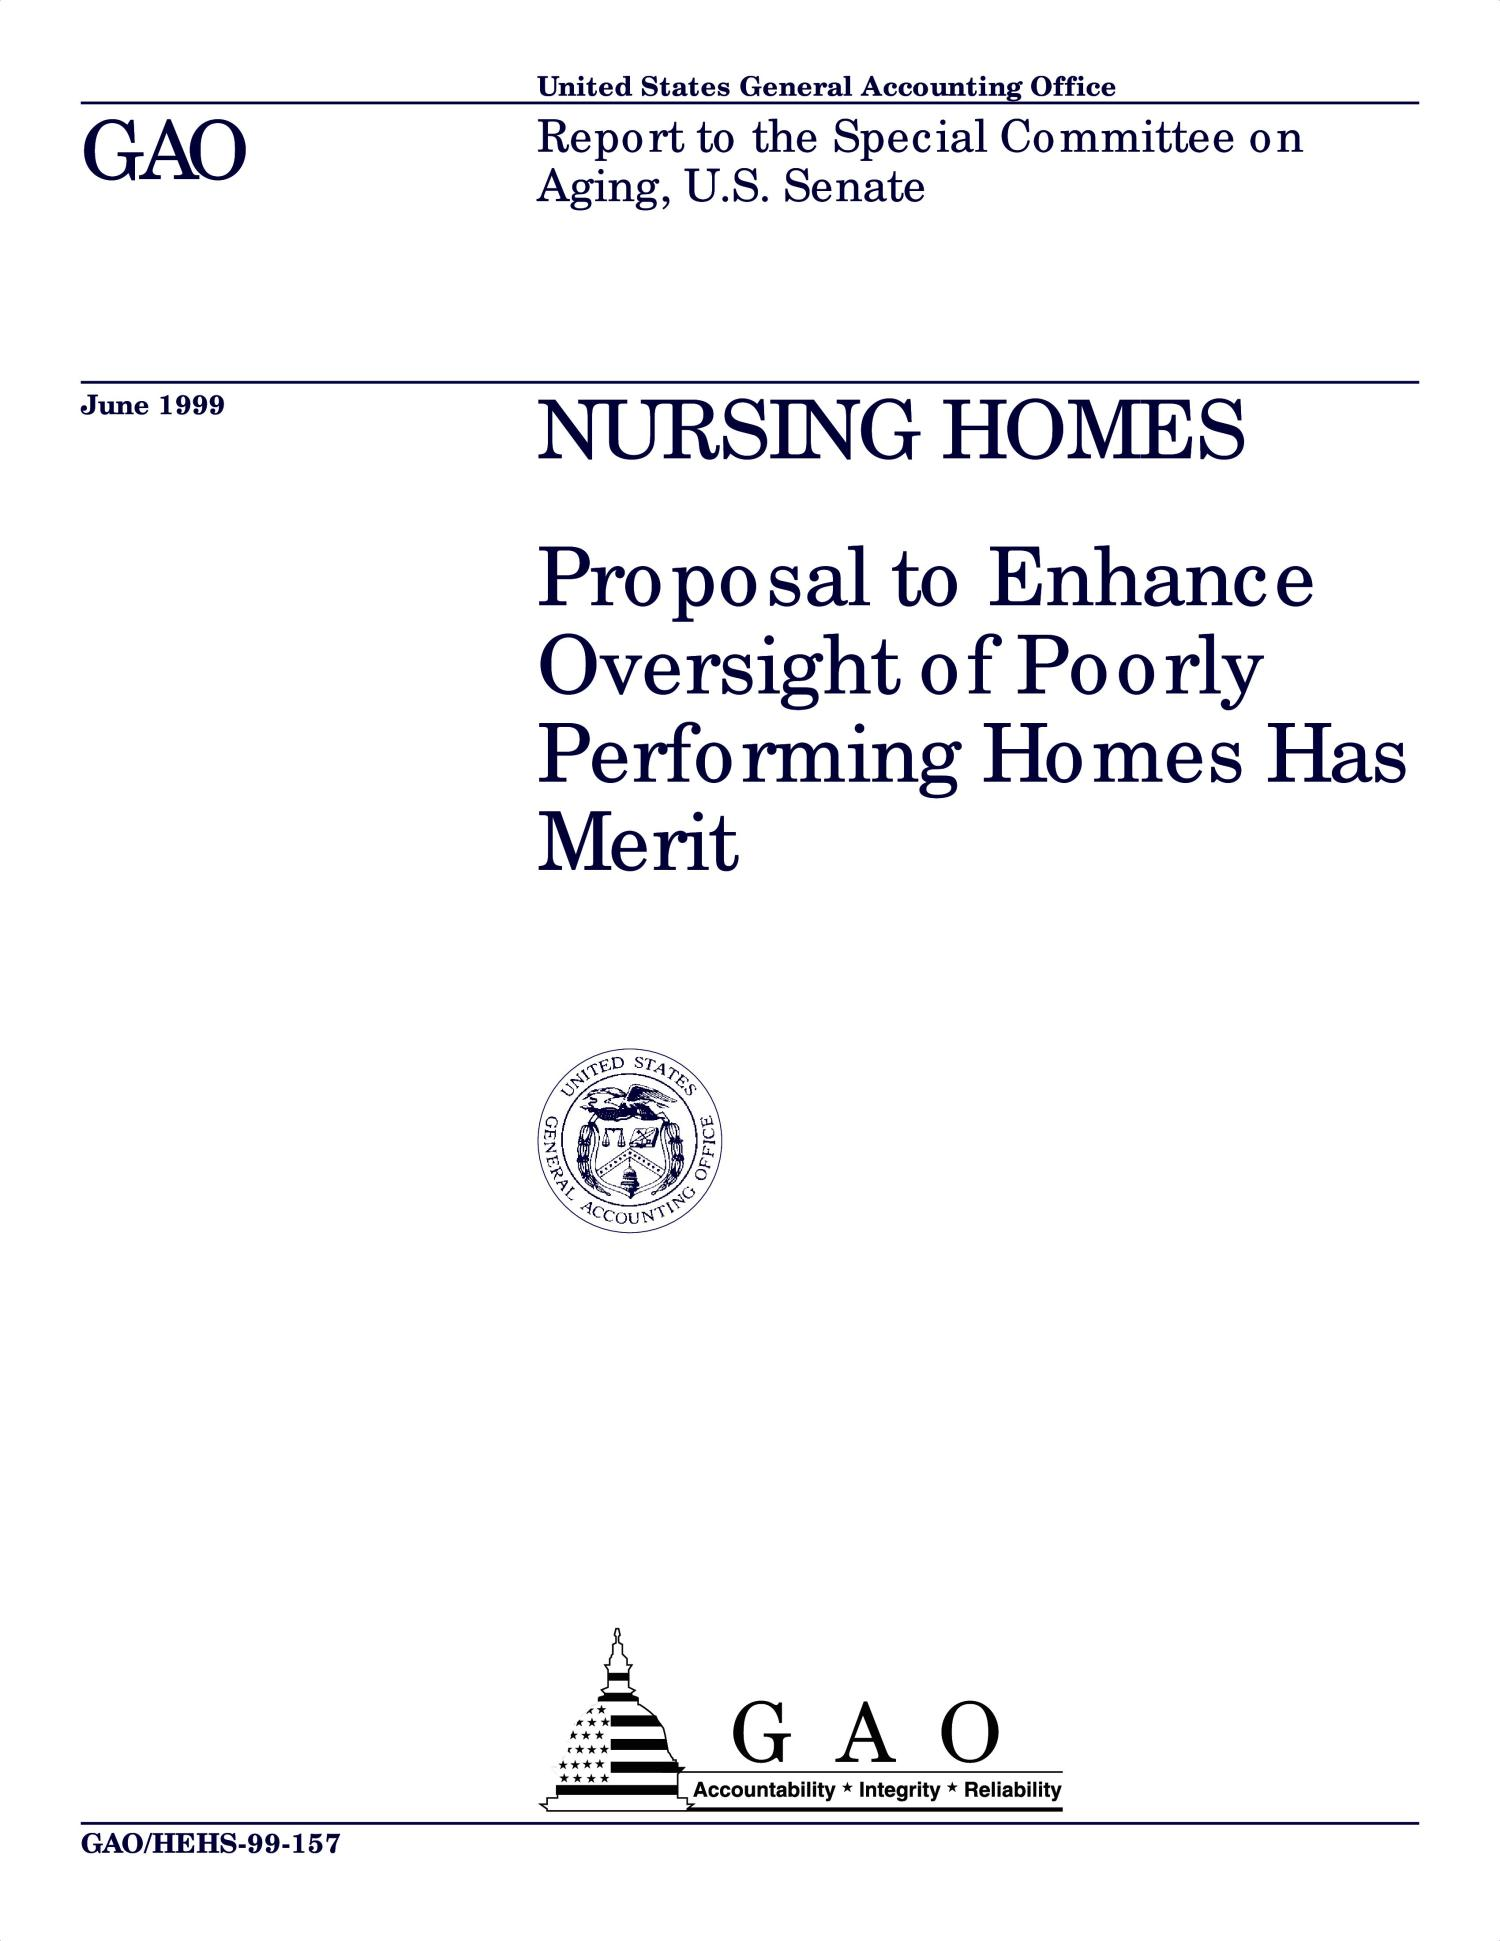 Nursing Homes: Proposal To Enhance Oversight of Poorly Performing Homes Has Merit                                                                                                      [Sequence #]: 1 of 72